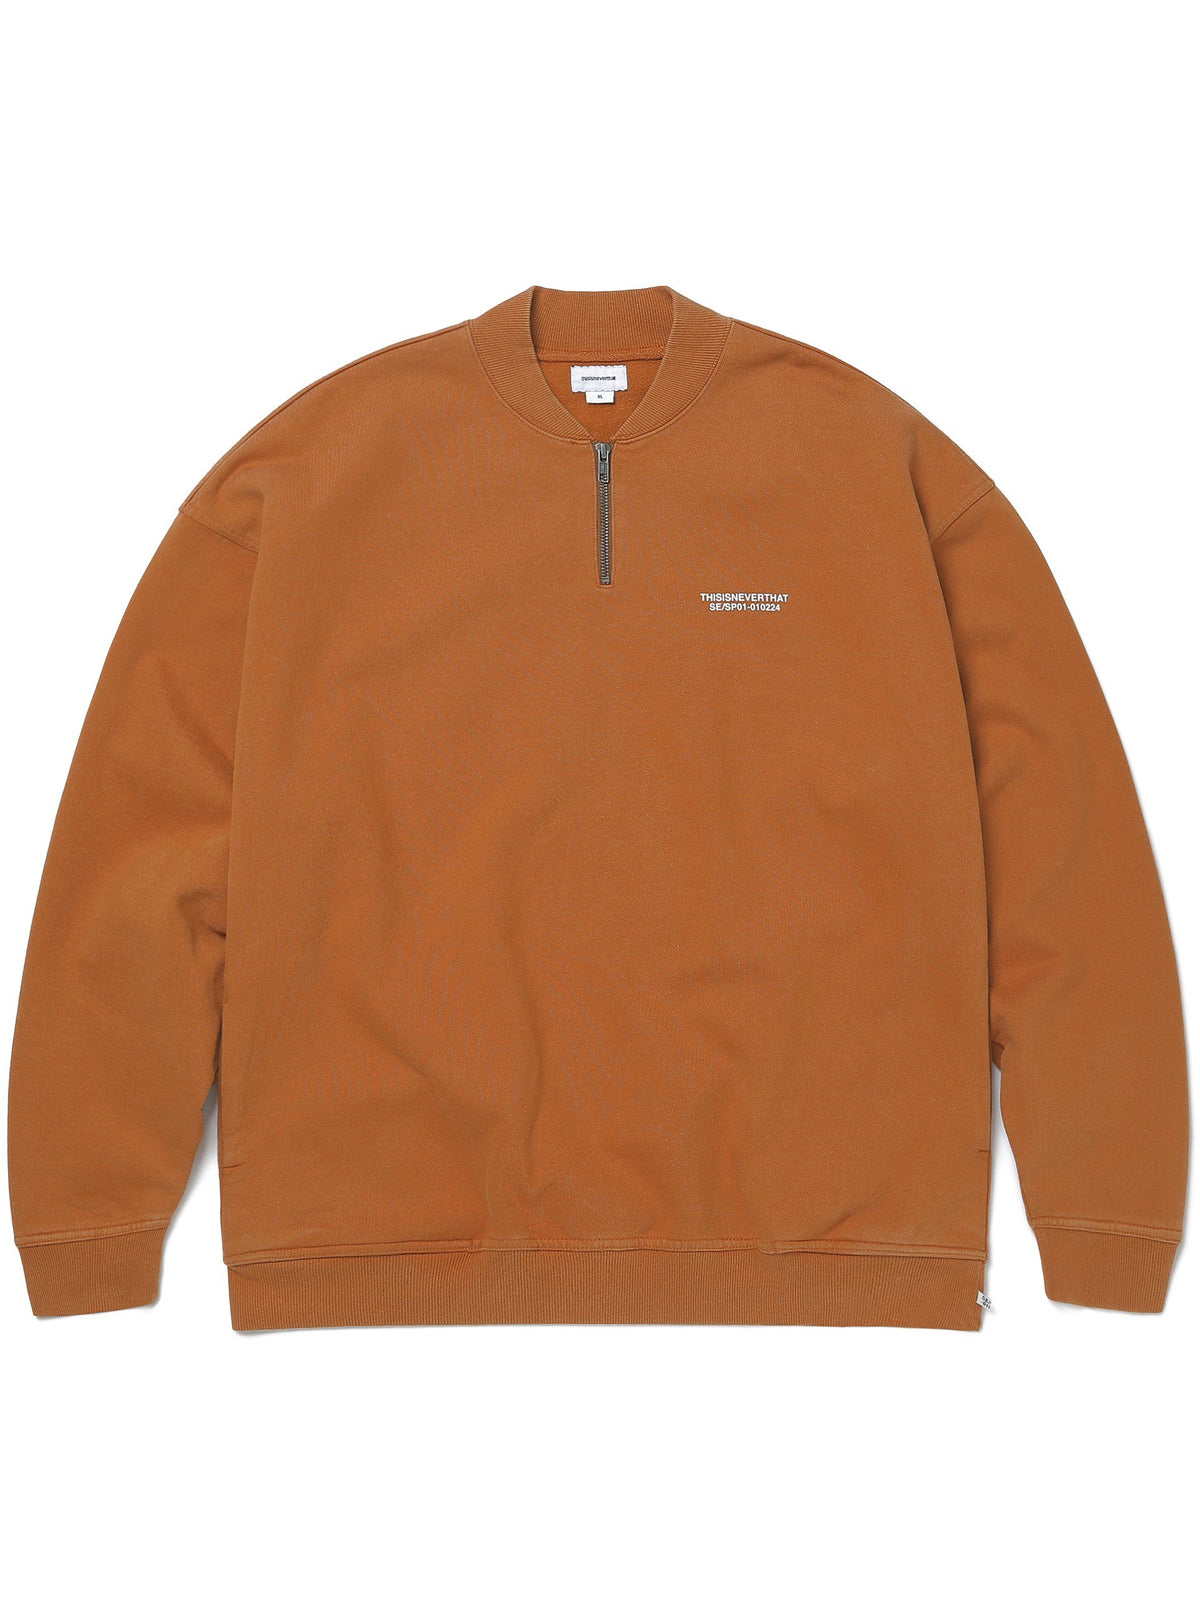 1/4 Zip Top - thisisneverthat